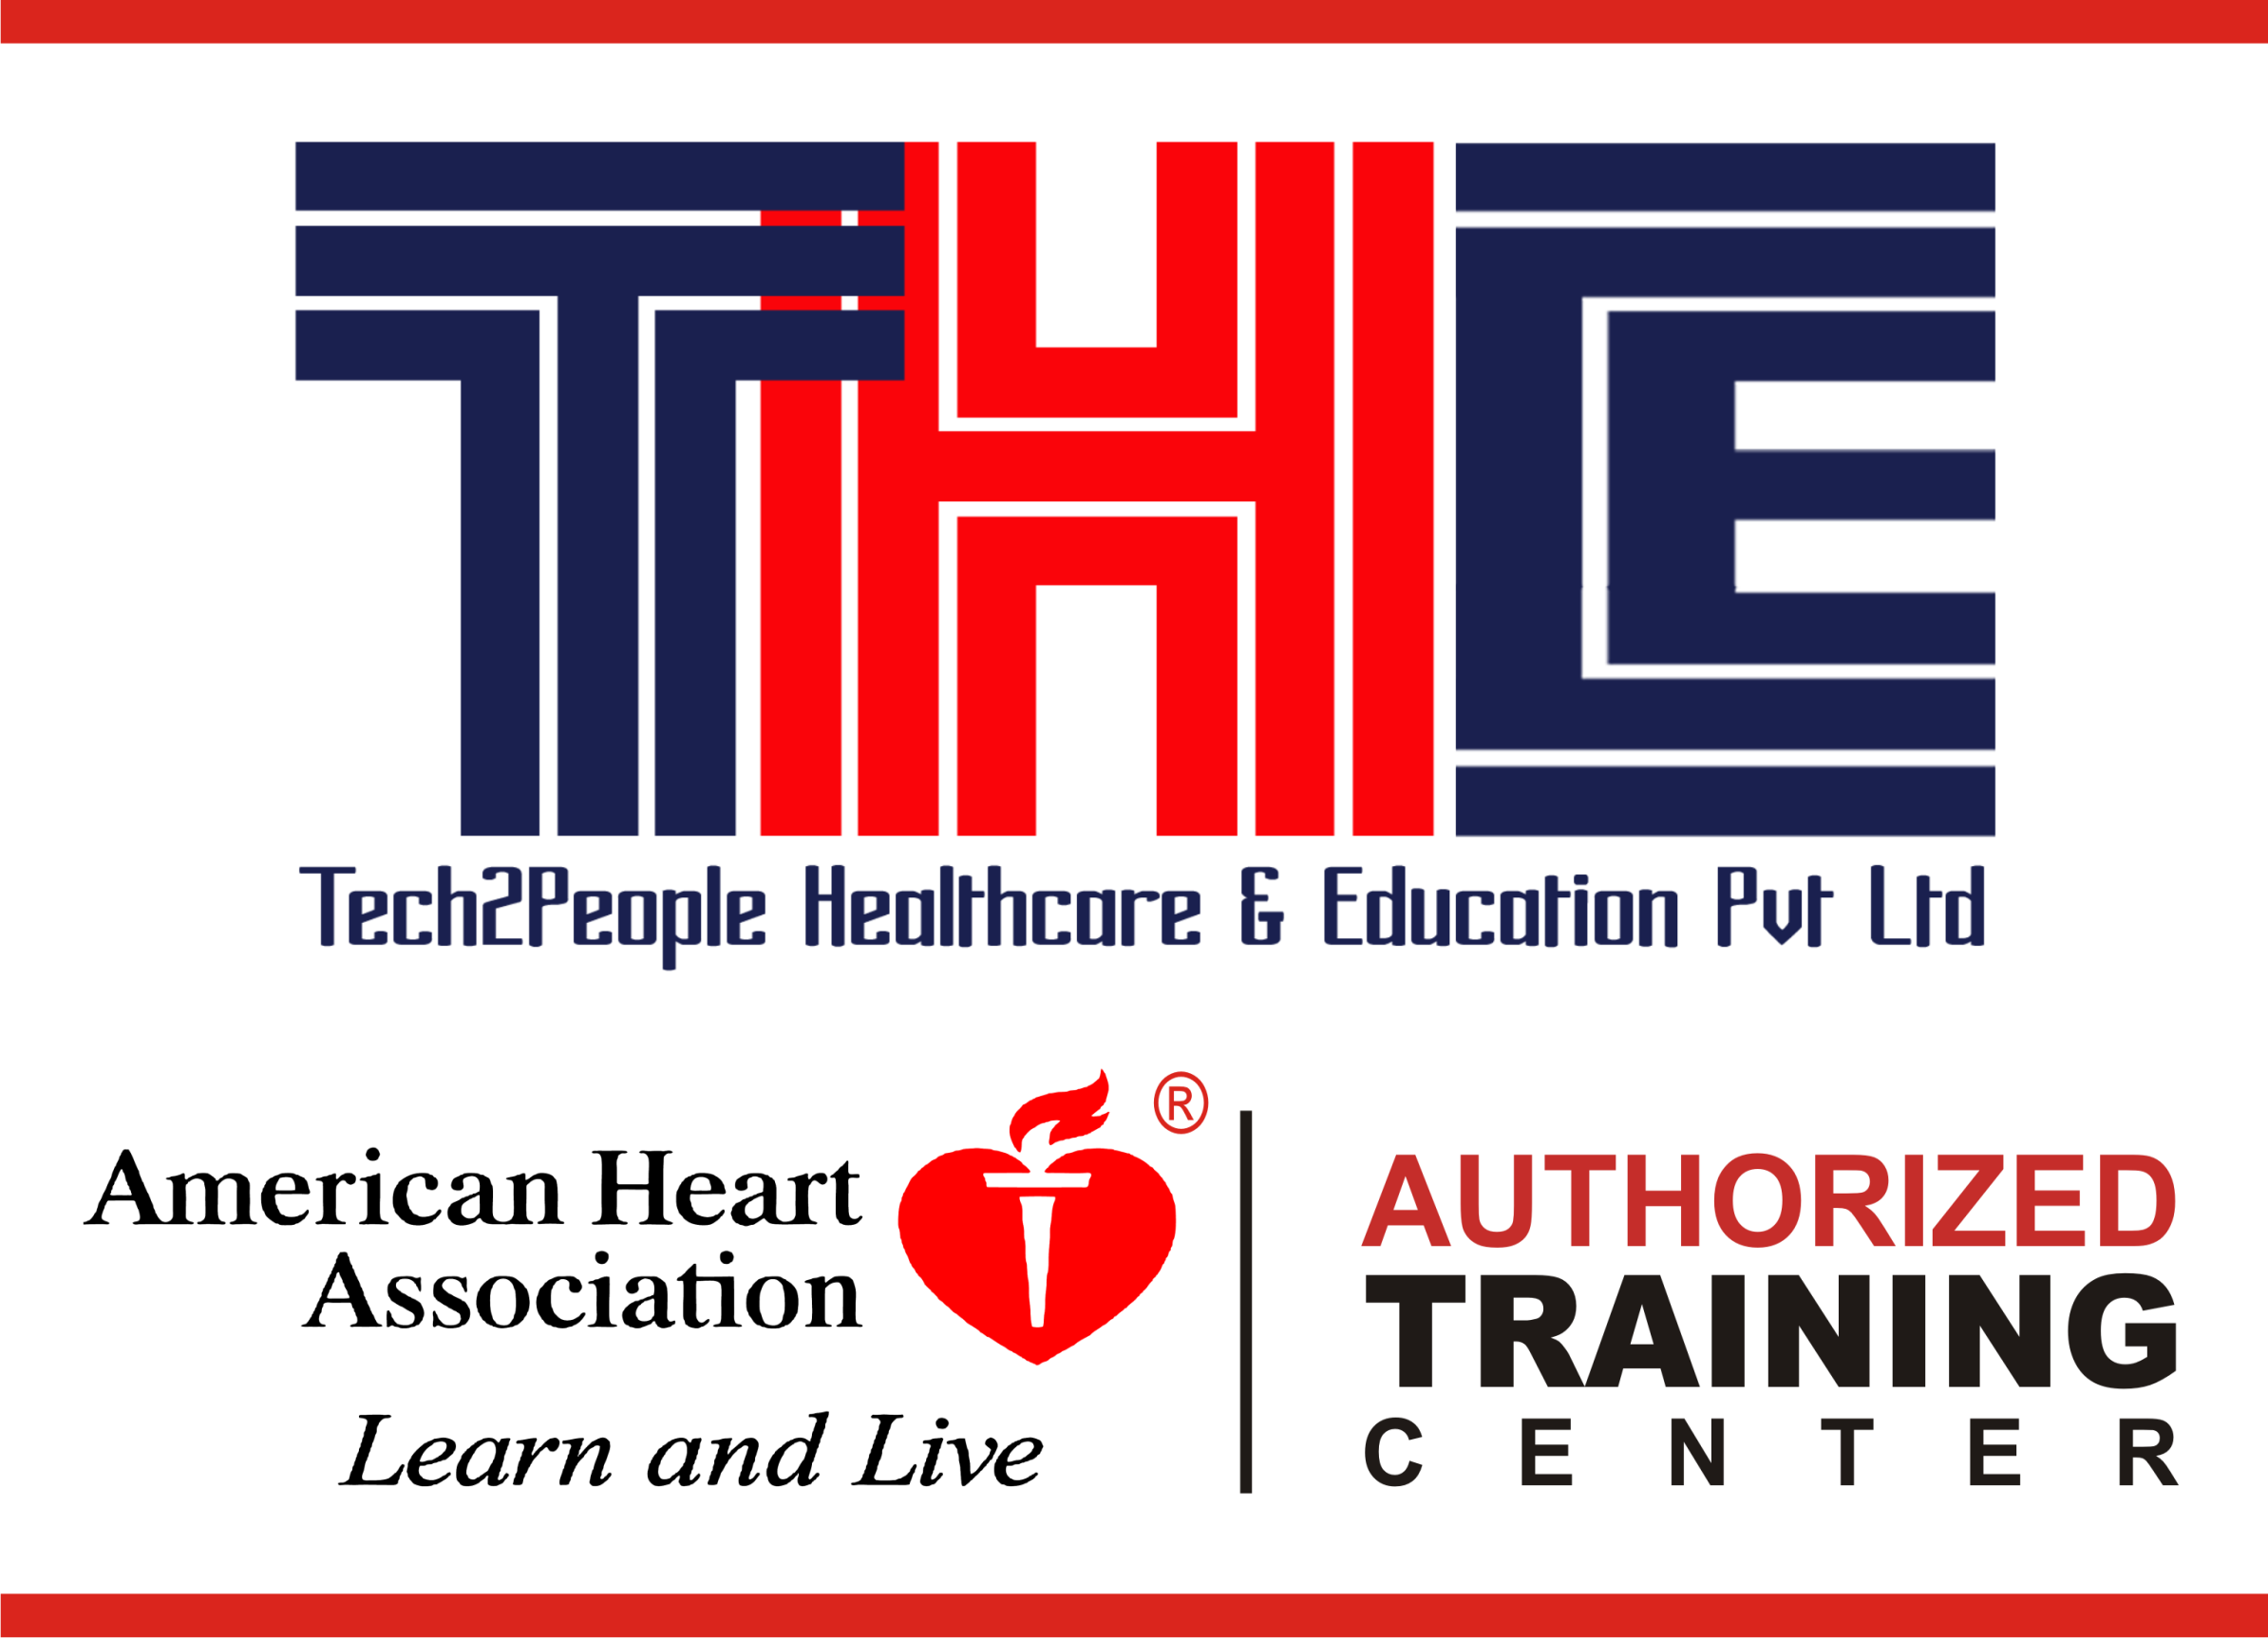 bls acls aha american heart association emergency management rh t2phealthcare com Printable ACLS Algorithms Printable ACLS Algorithms